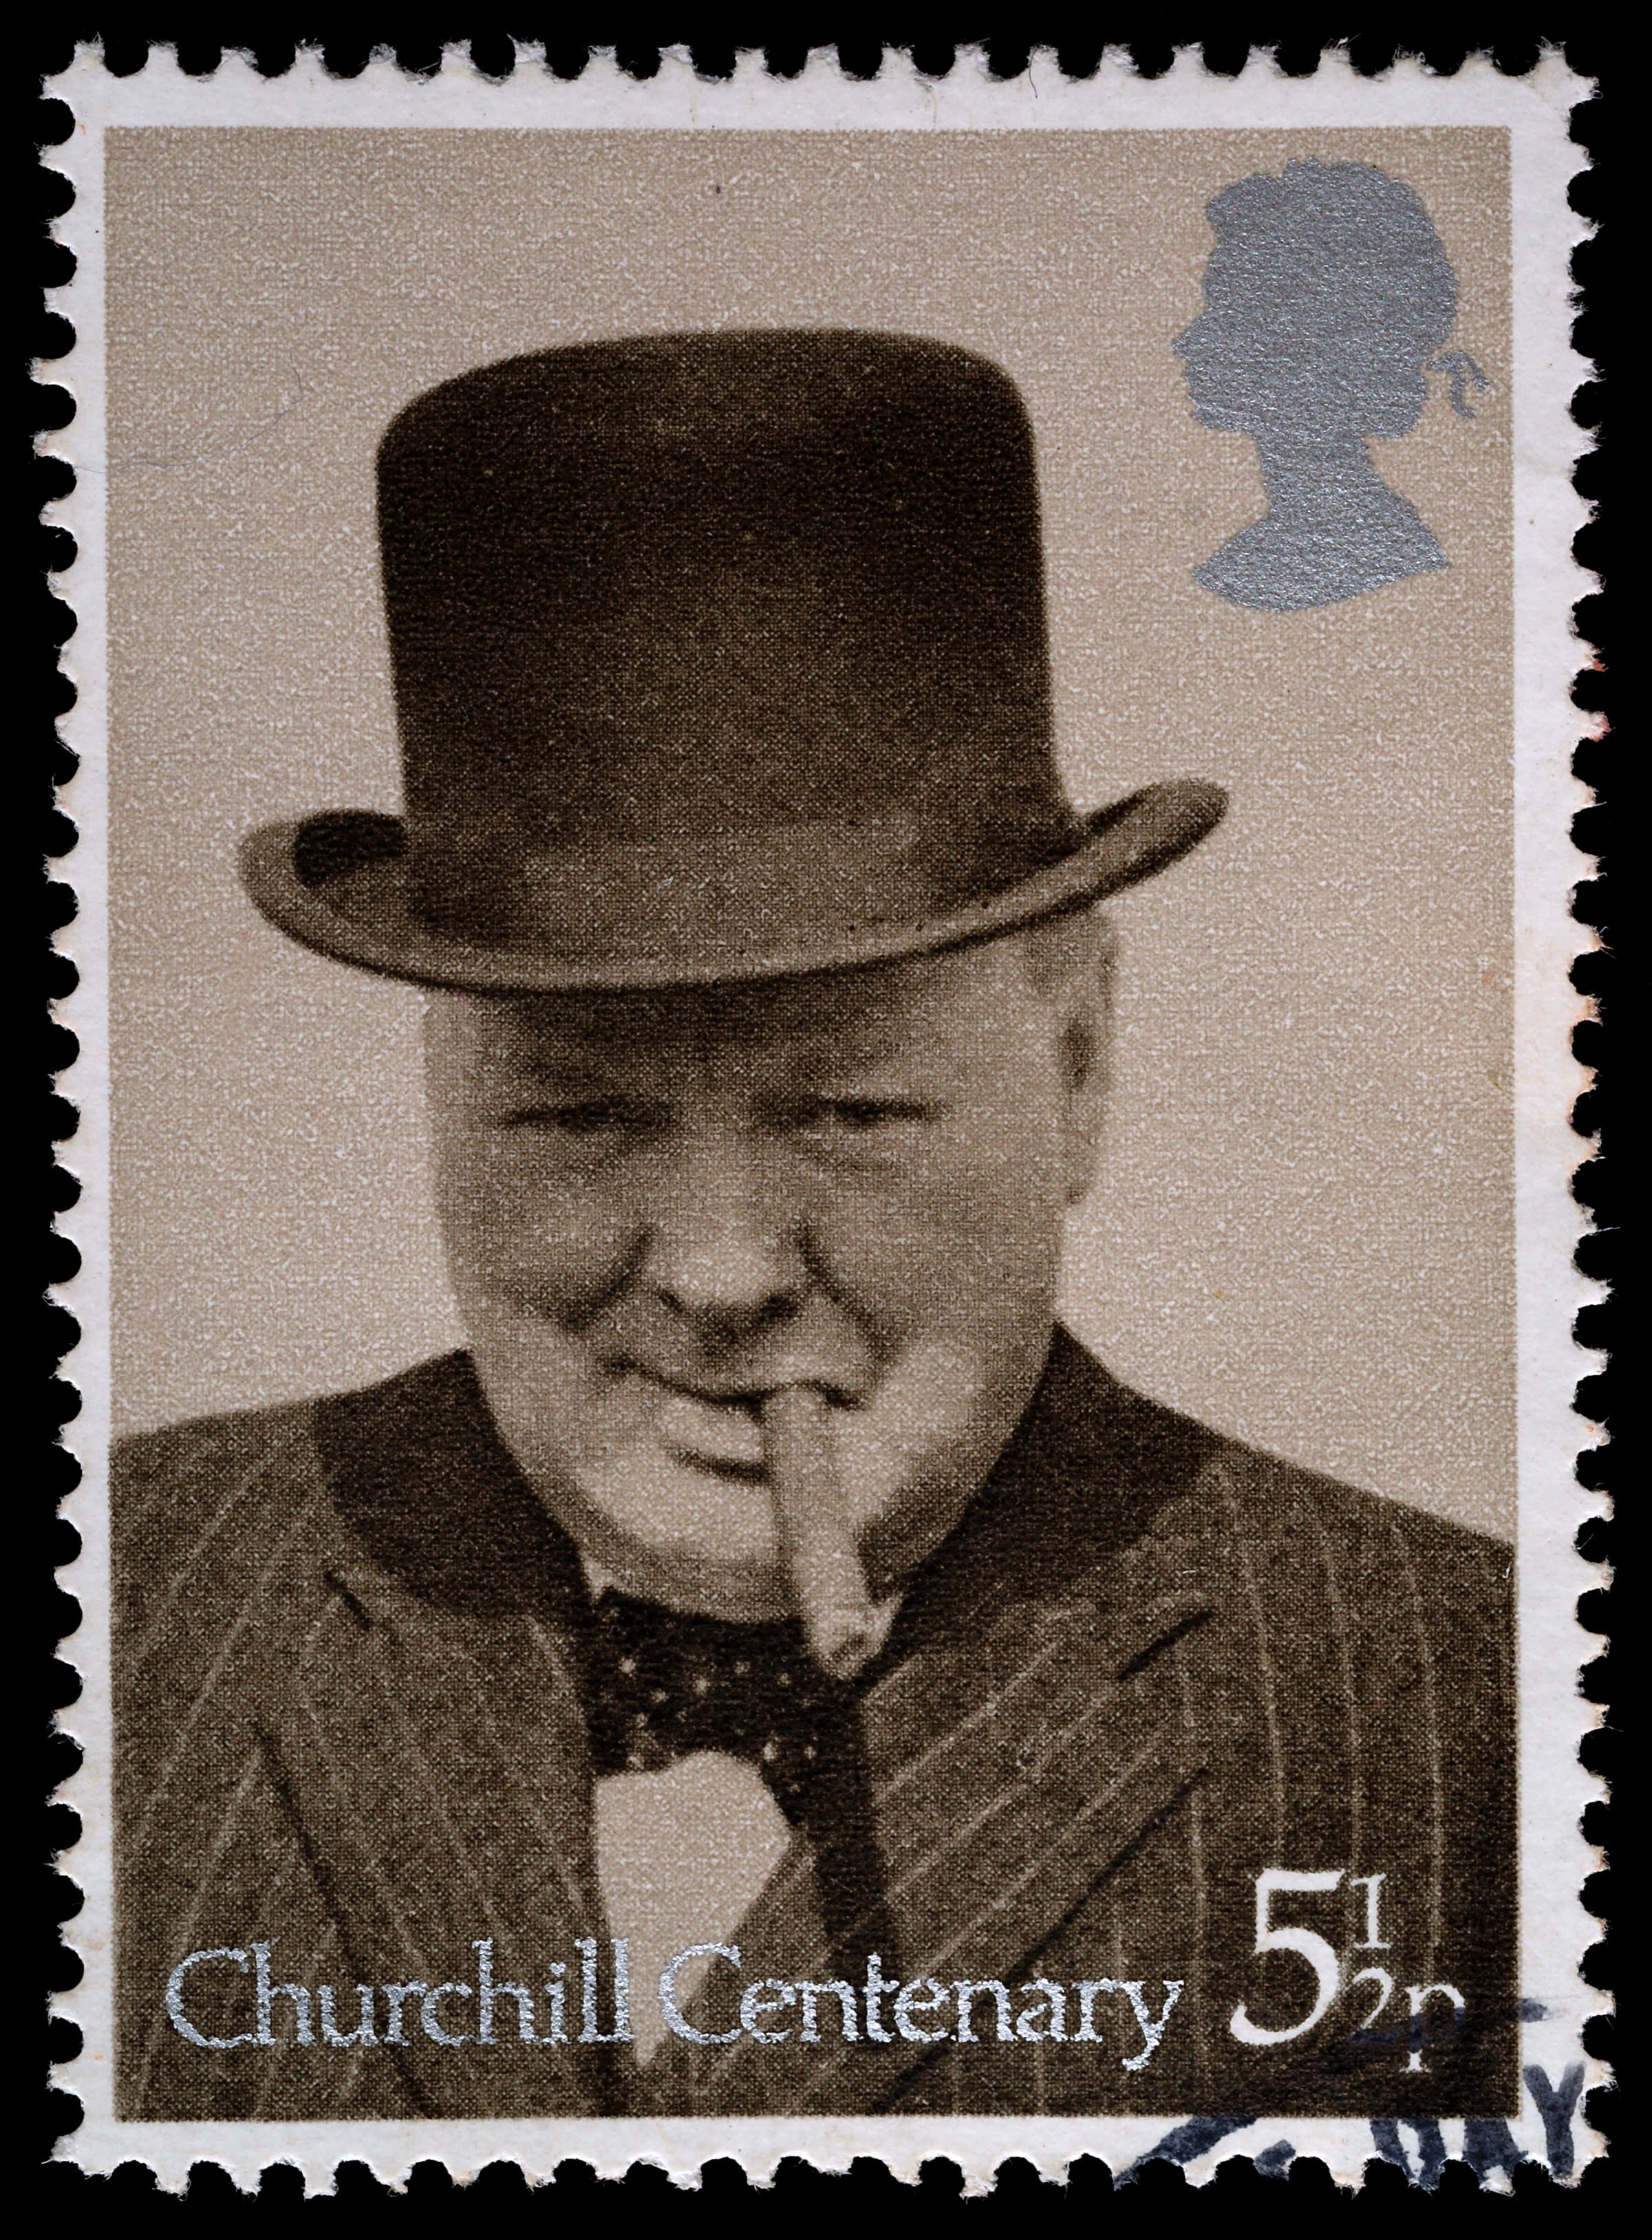 Winston Churchill Postage Stamp